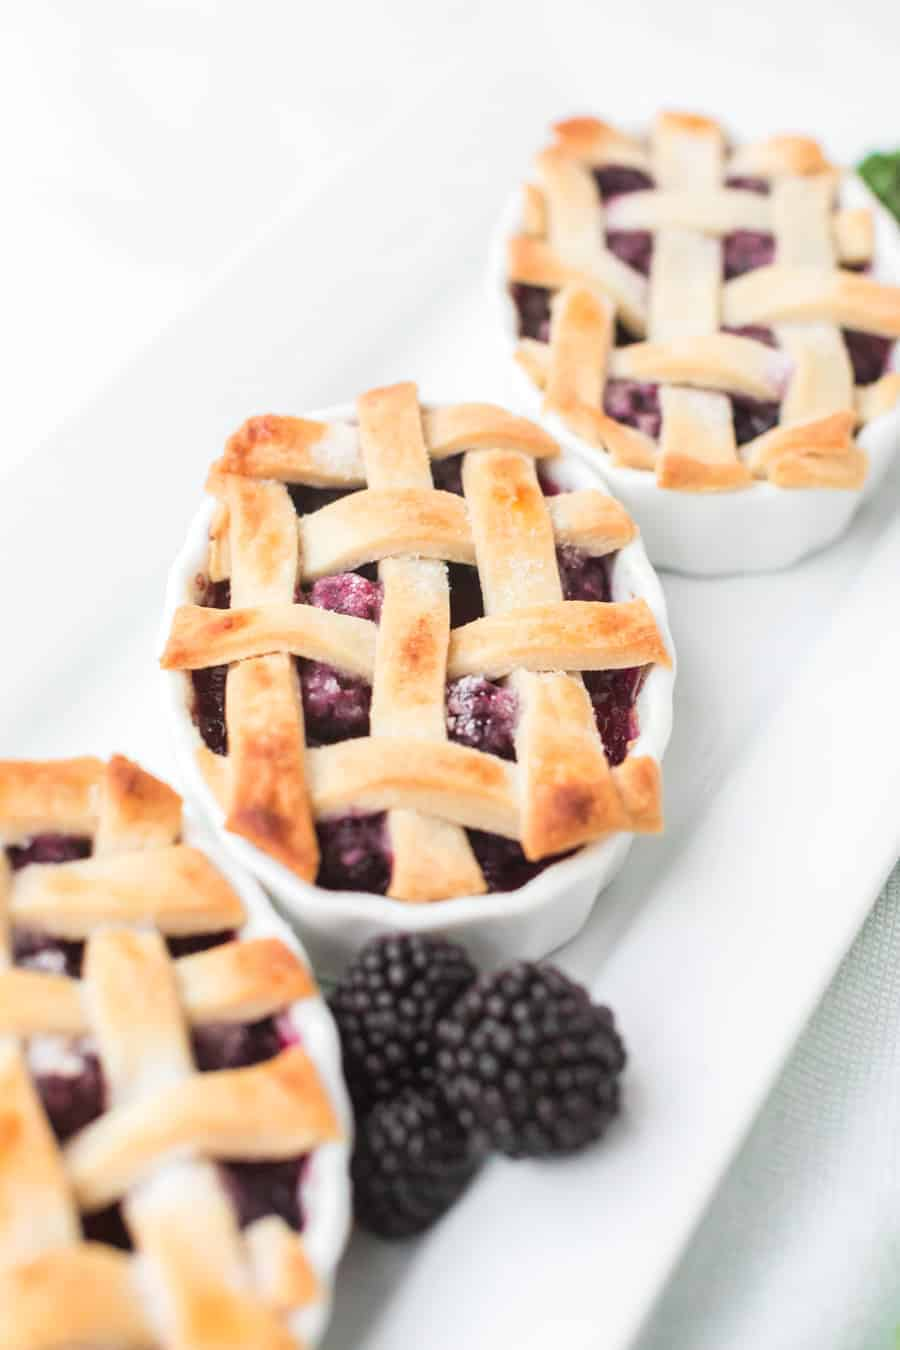 Raspberry cobbler made with black raspberries and a flaky pie crust is a favorite family dessert passed down by my grandmother. #raspberrycobbler #cobbler #raspberry #dessert #baking #familyrecipe